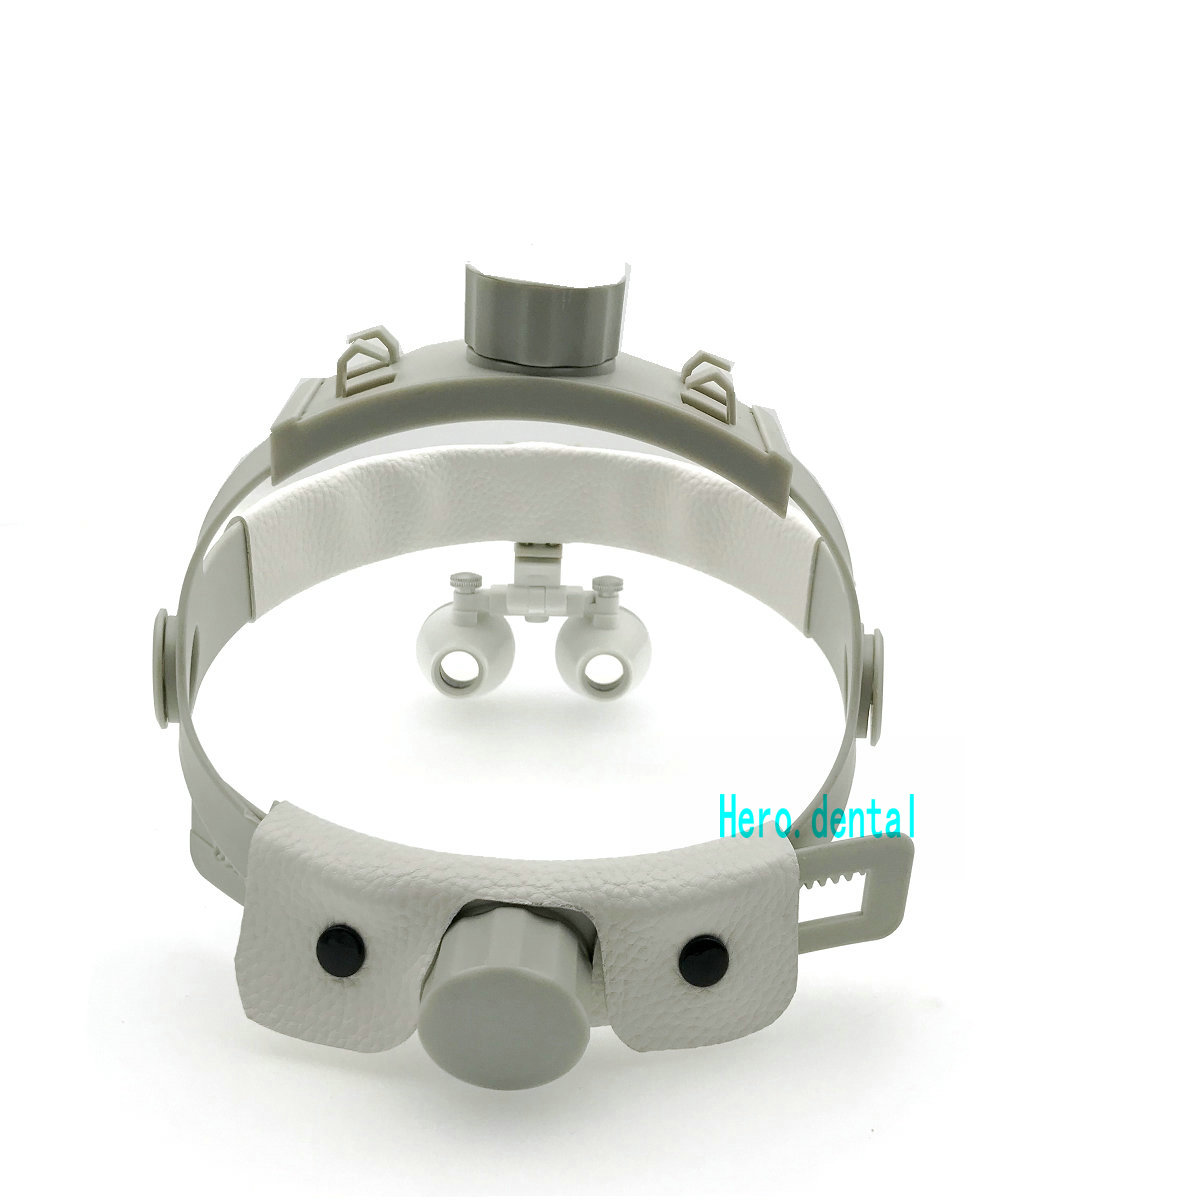 3.5X-420 dentaire chirurgical médical bandeau binoculaire Loupes loupe blanc - 5